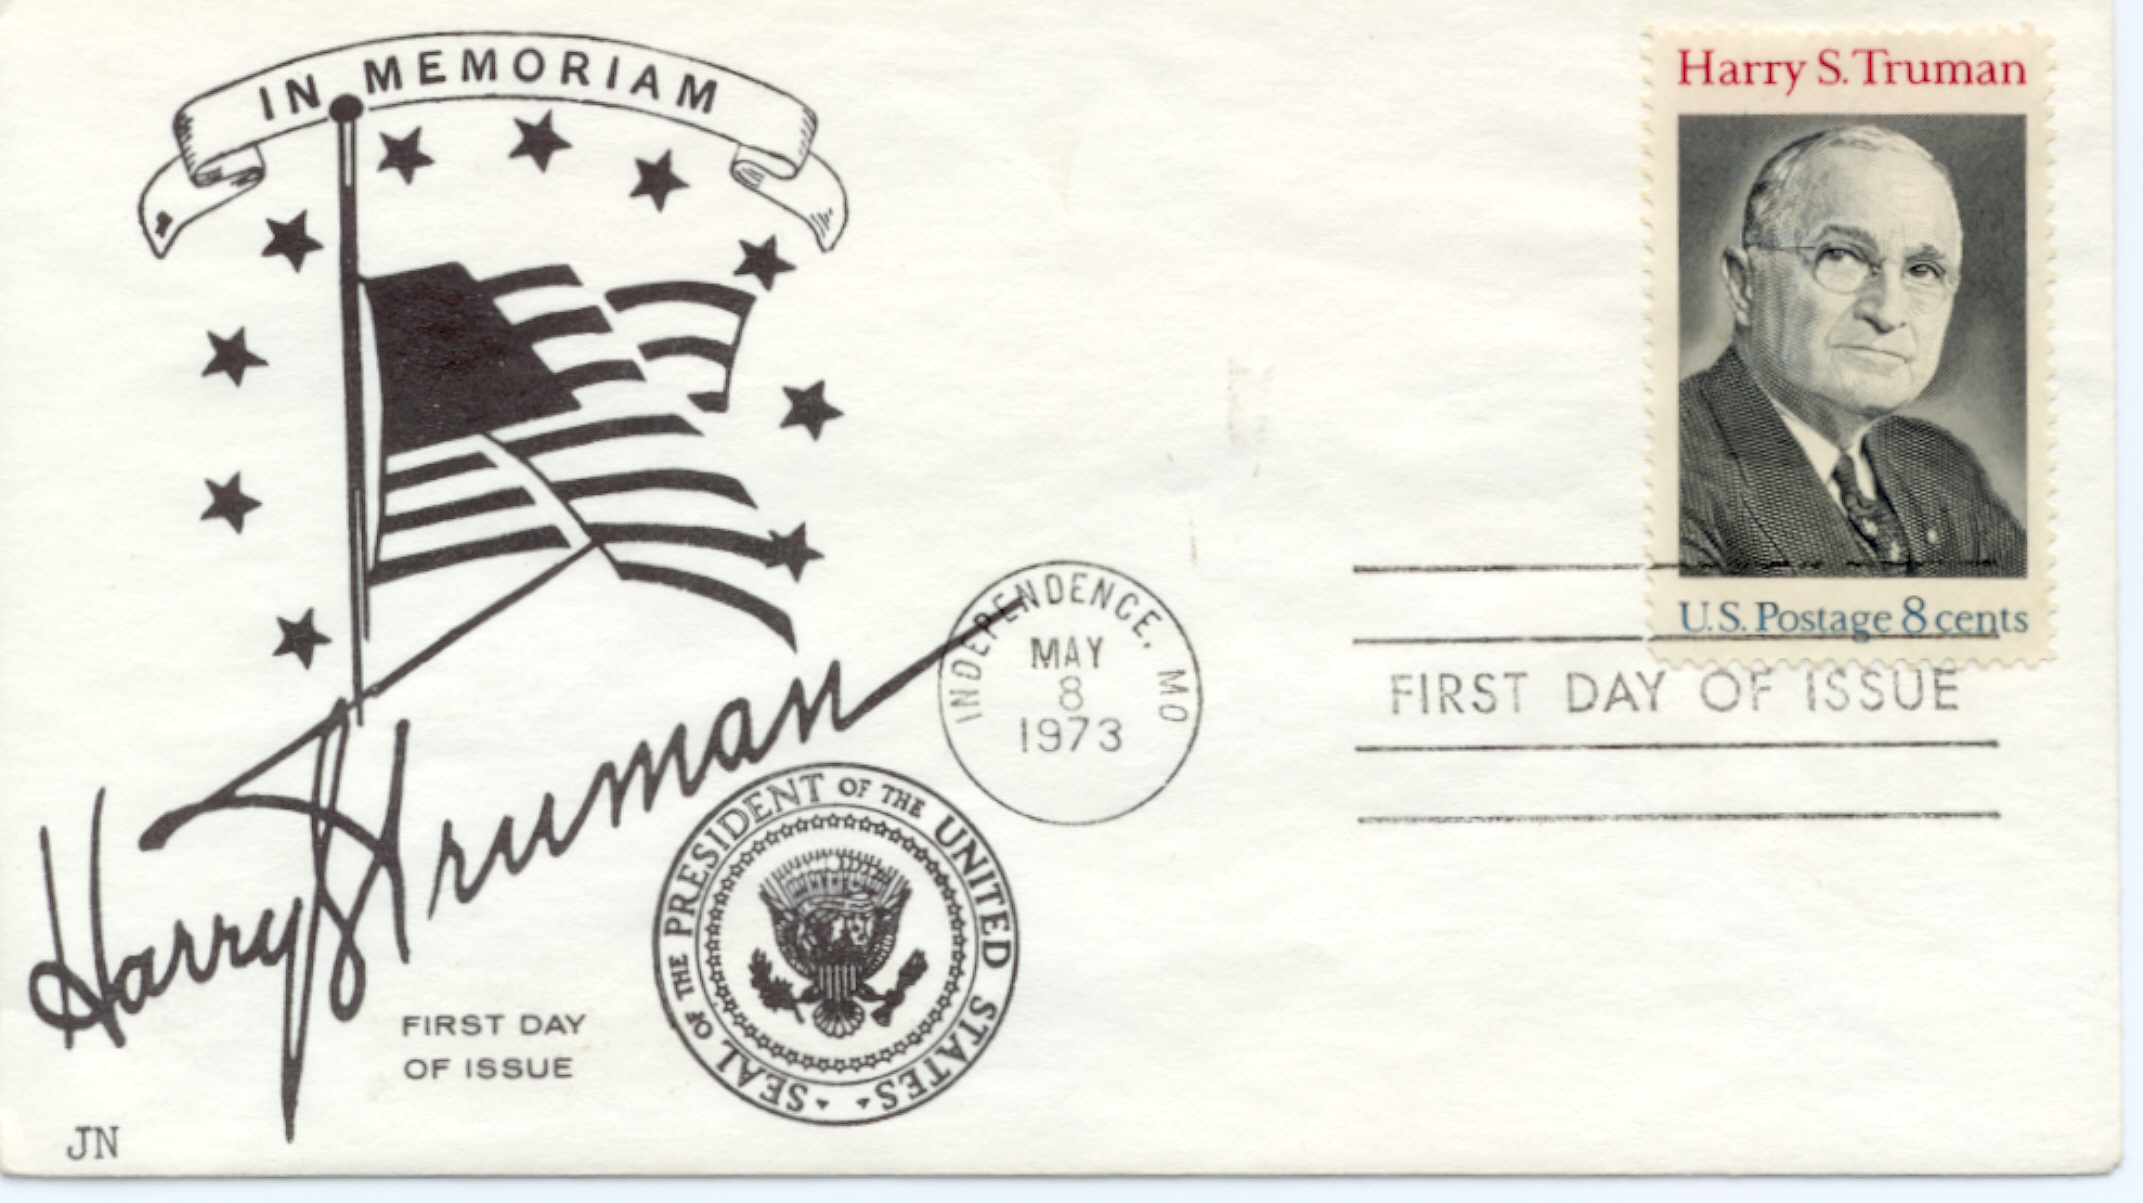 HST Memorial FDC #15